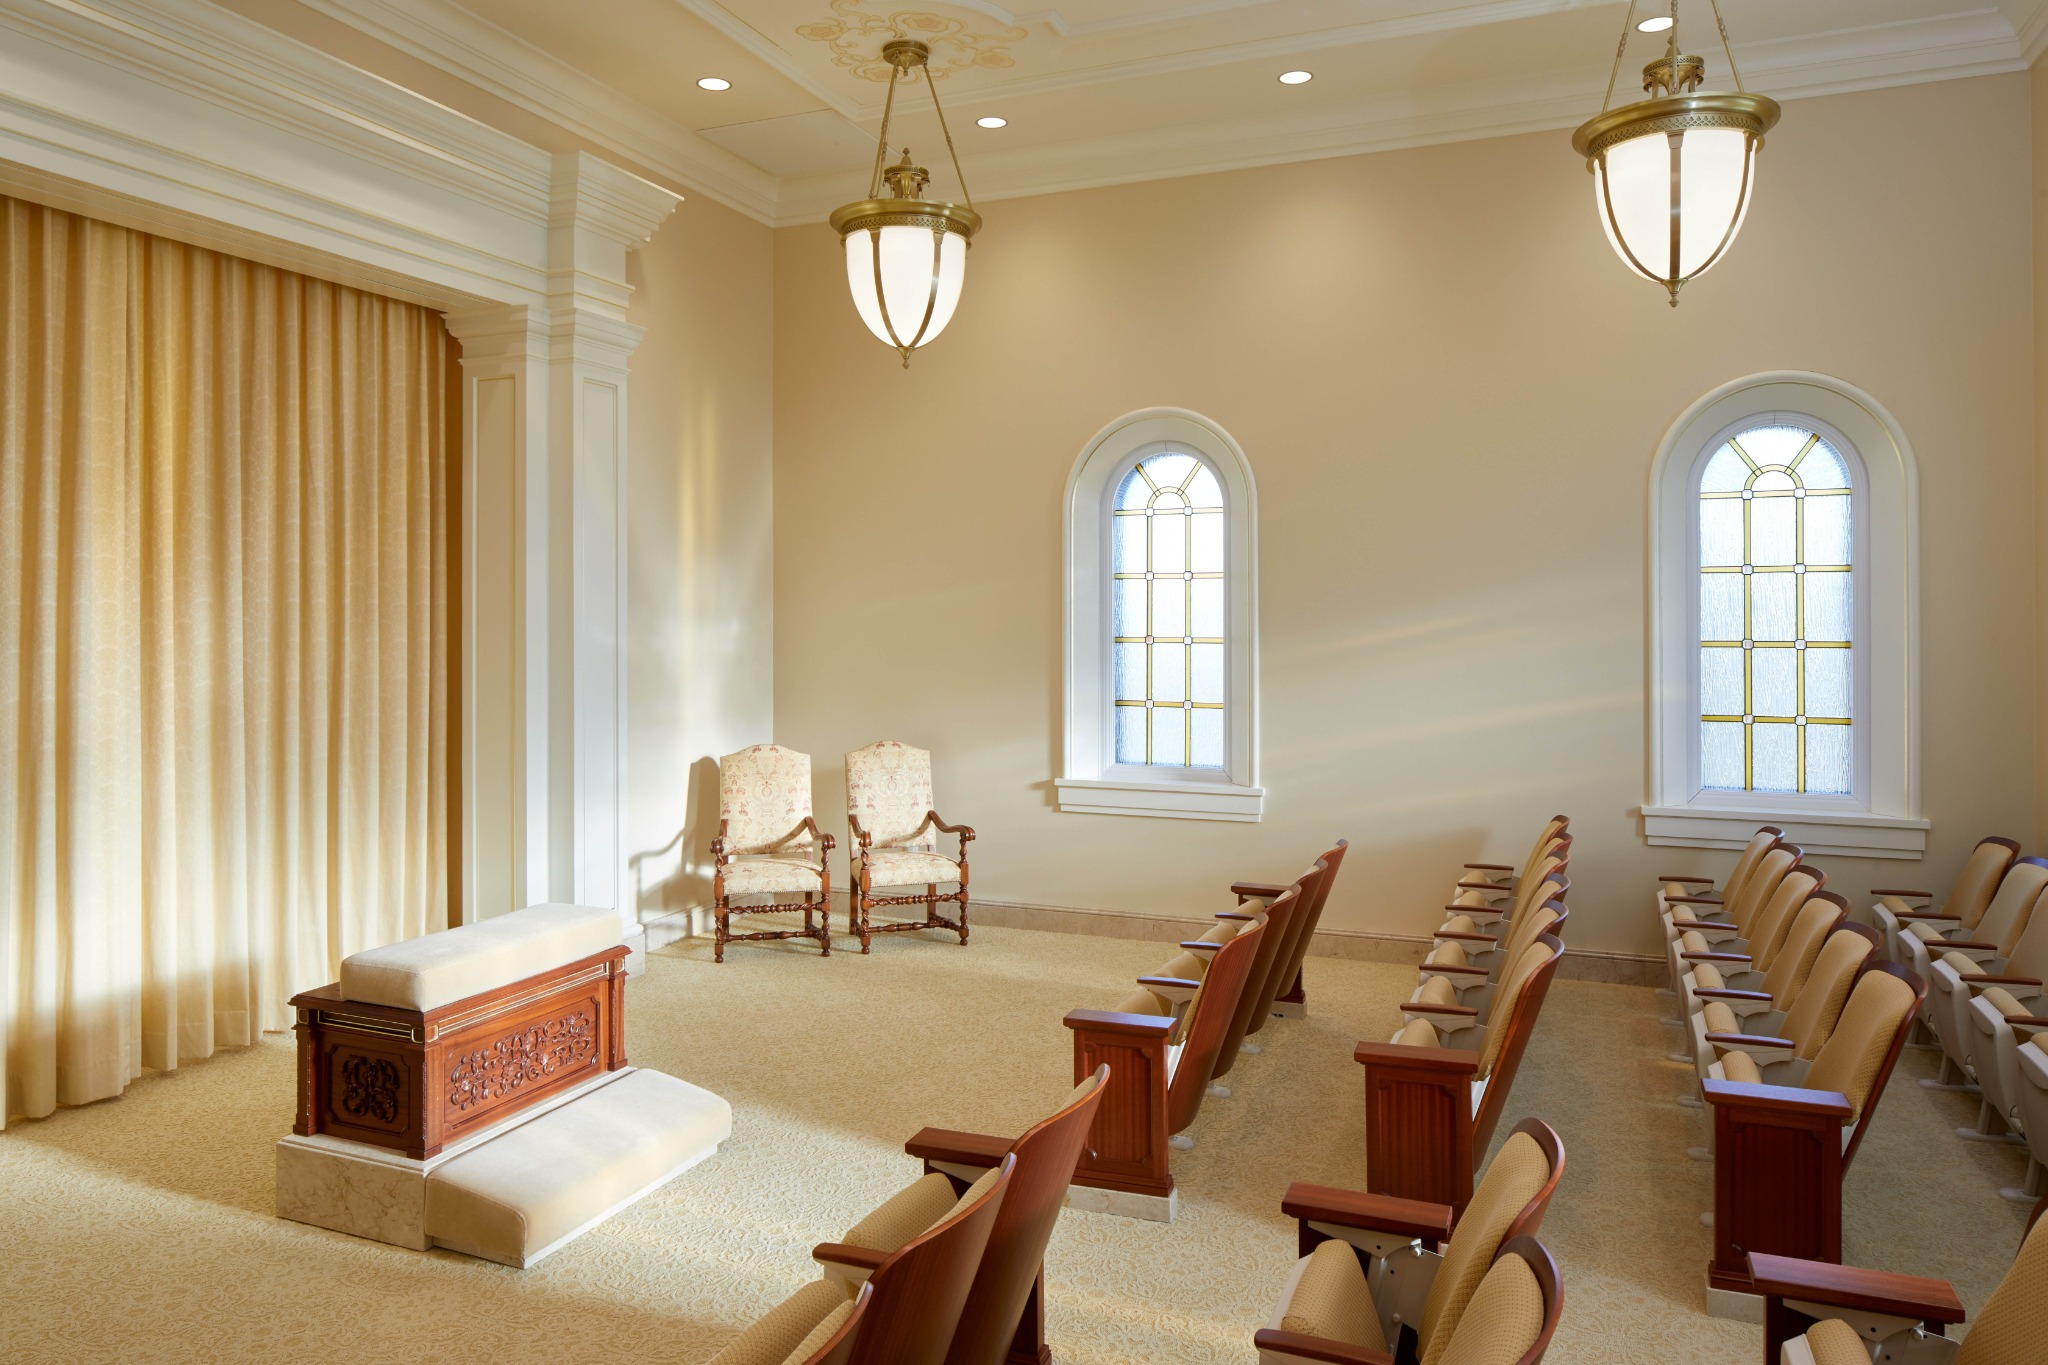 An instruction room in the Arequipa Peru Temple.